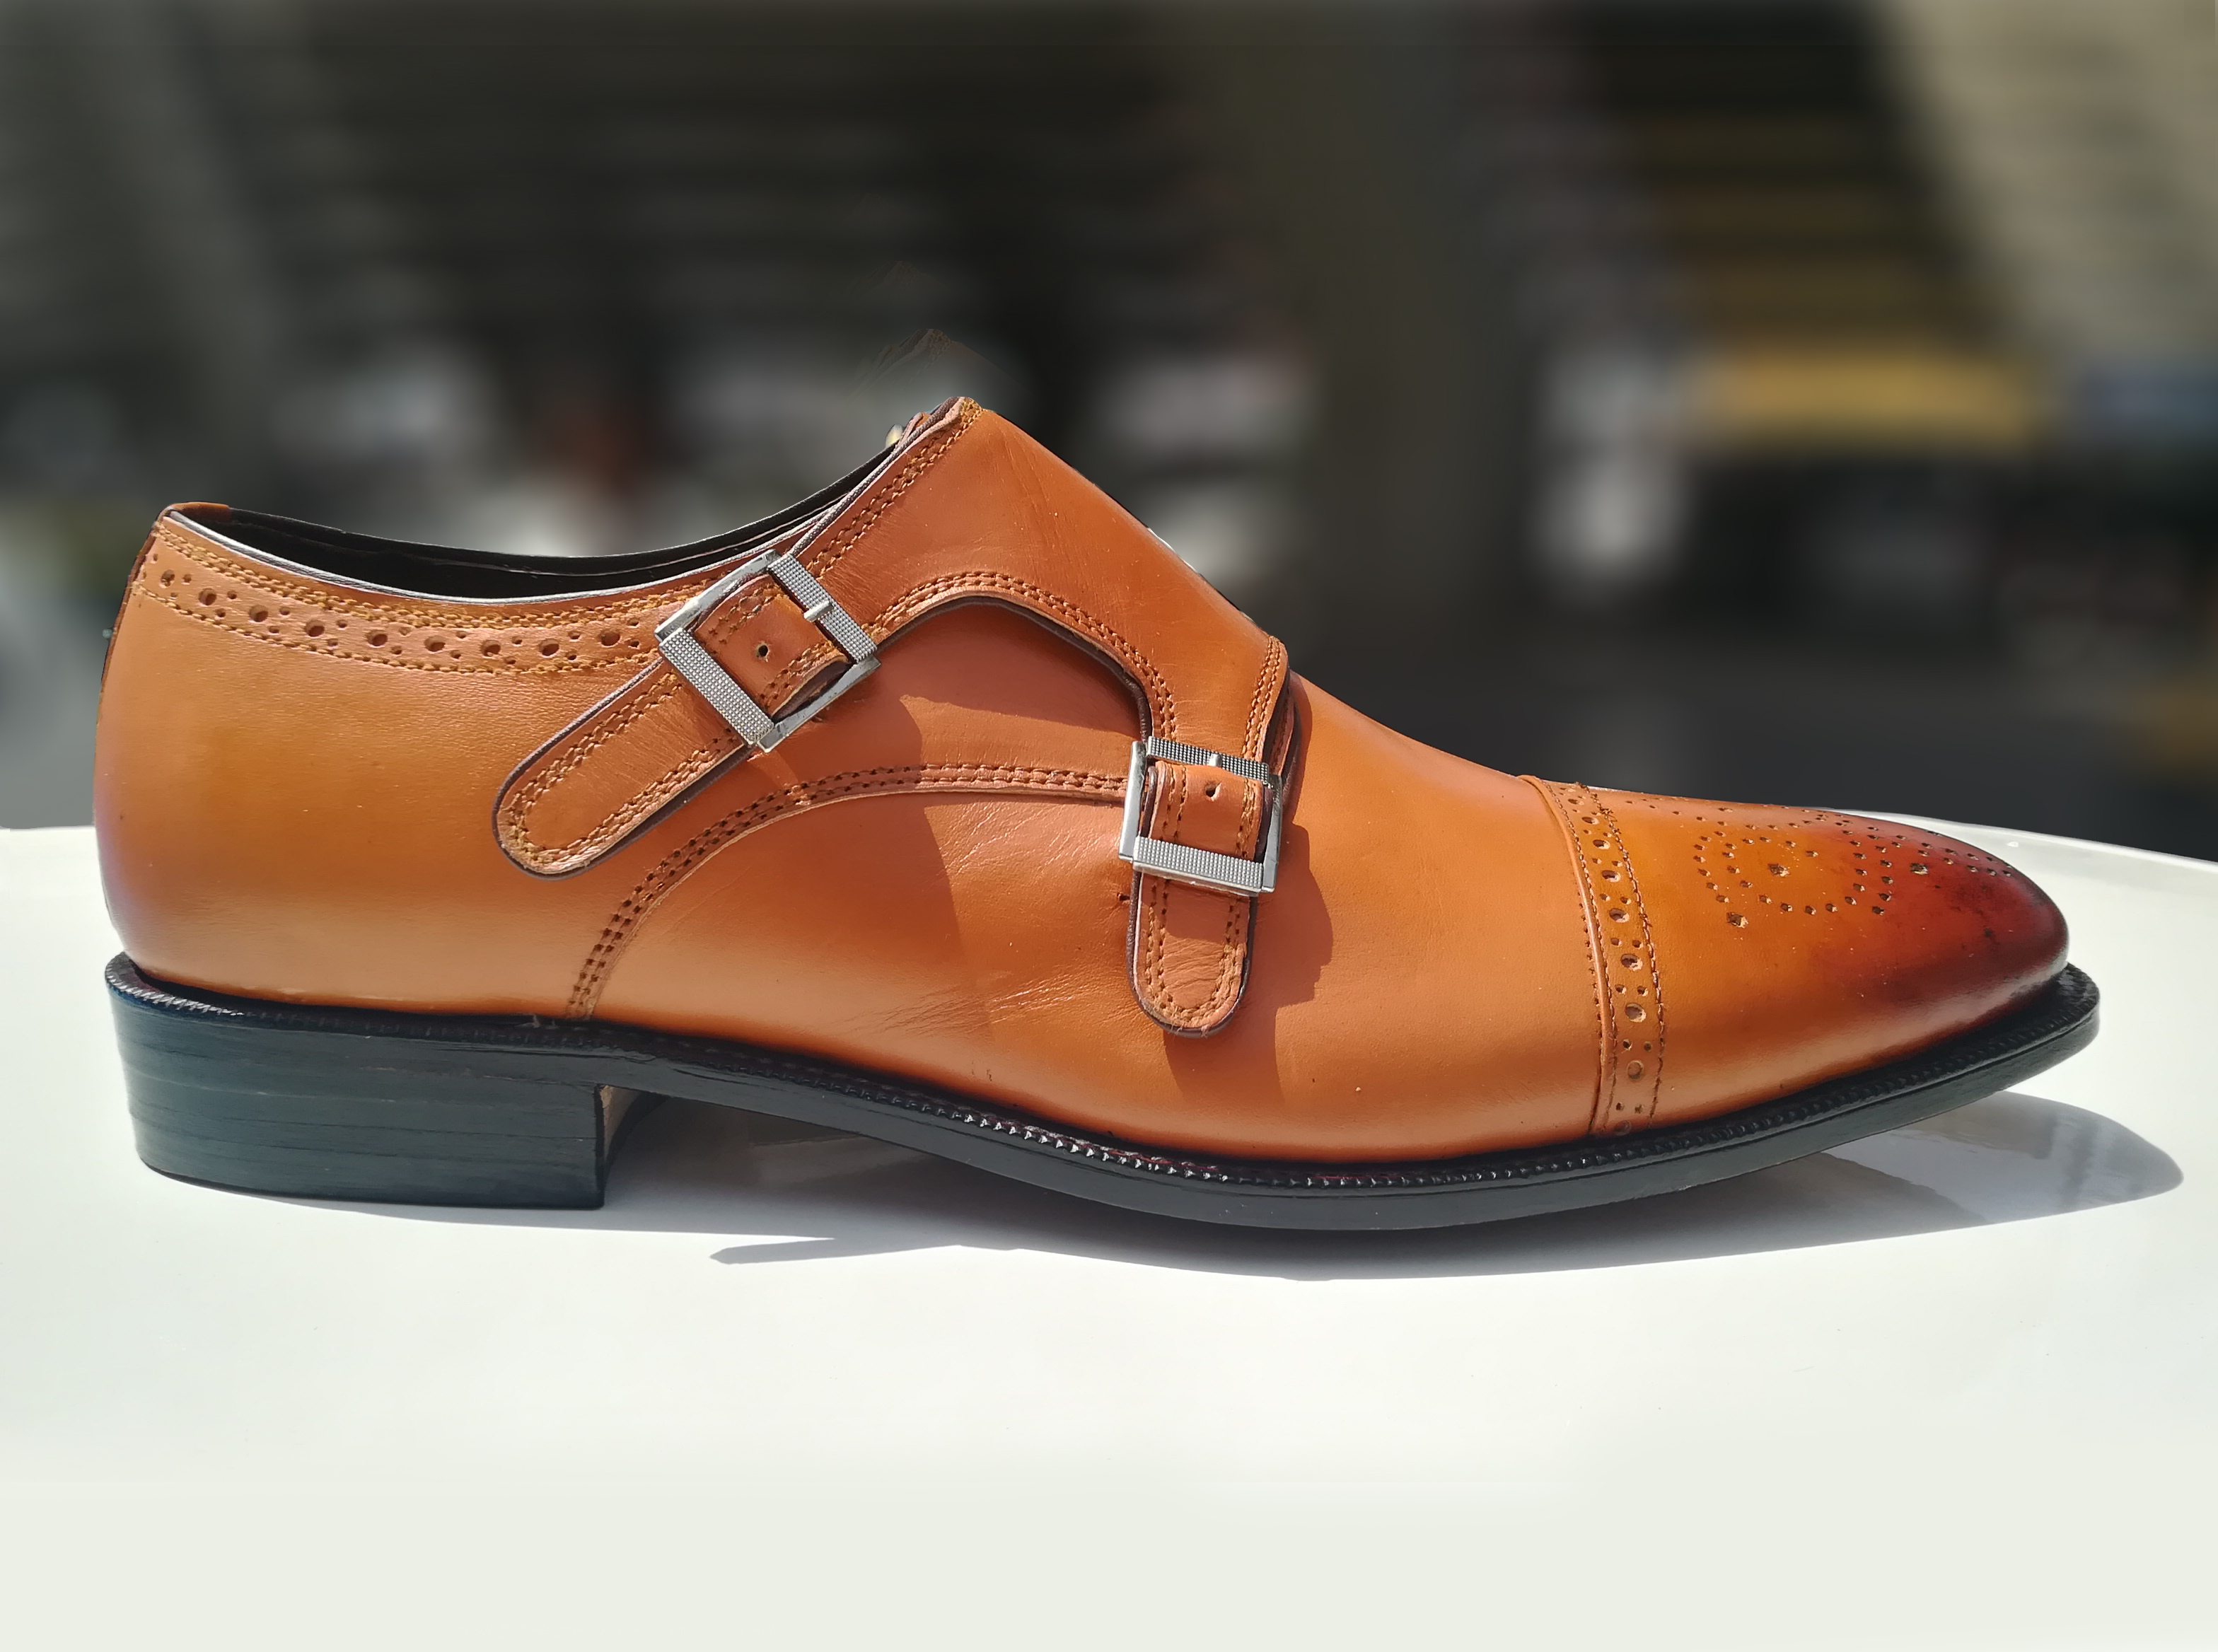 New Handmade Pure Tan Ostrich Leather Stylish Monk Strap Shoes for Men/'s